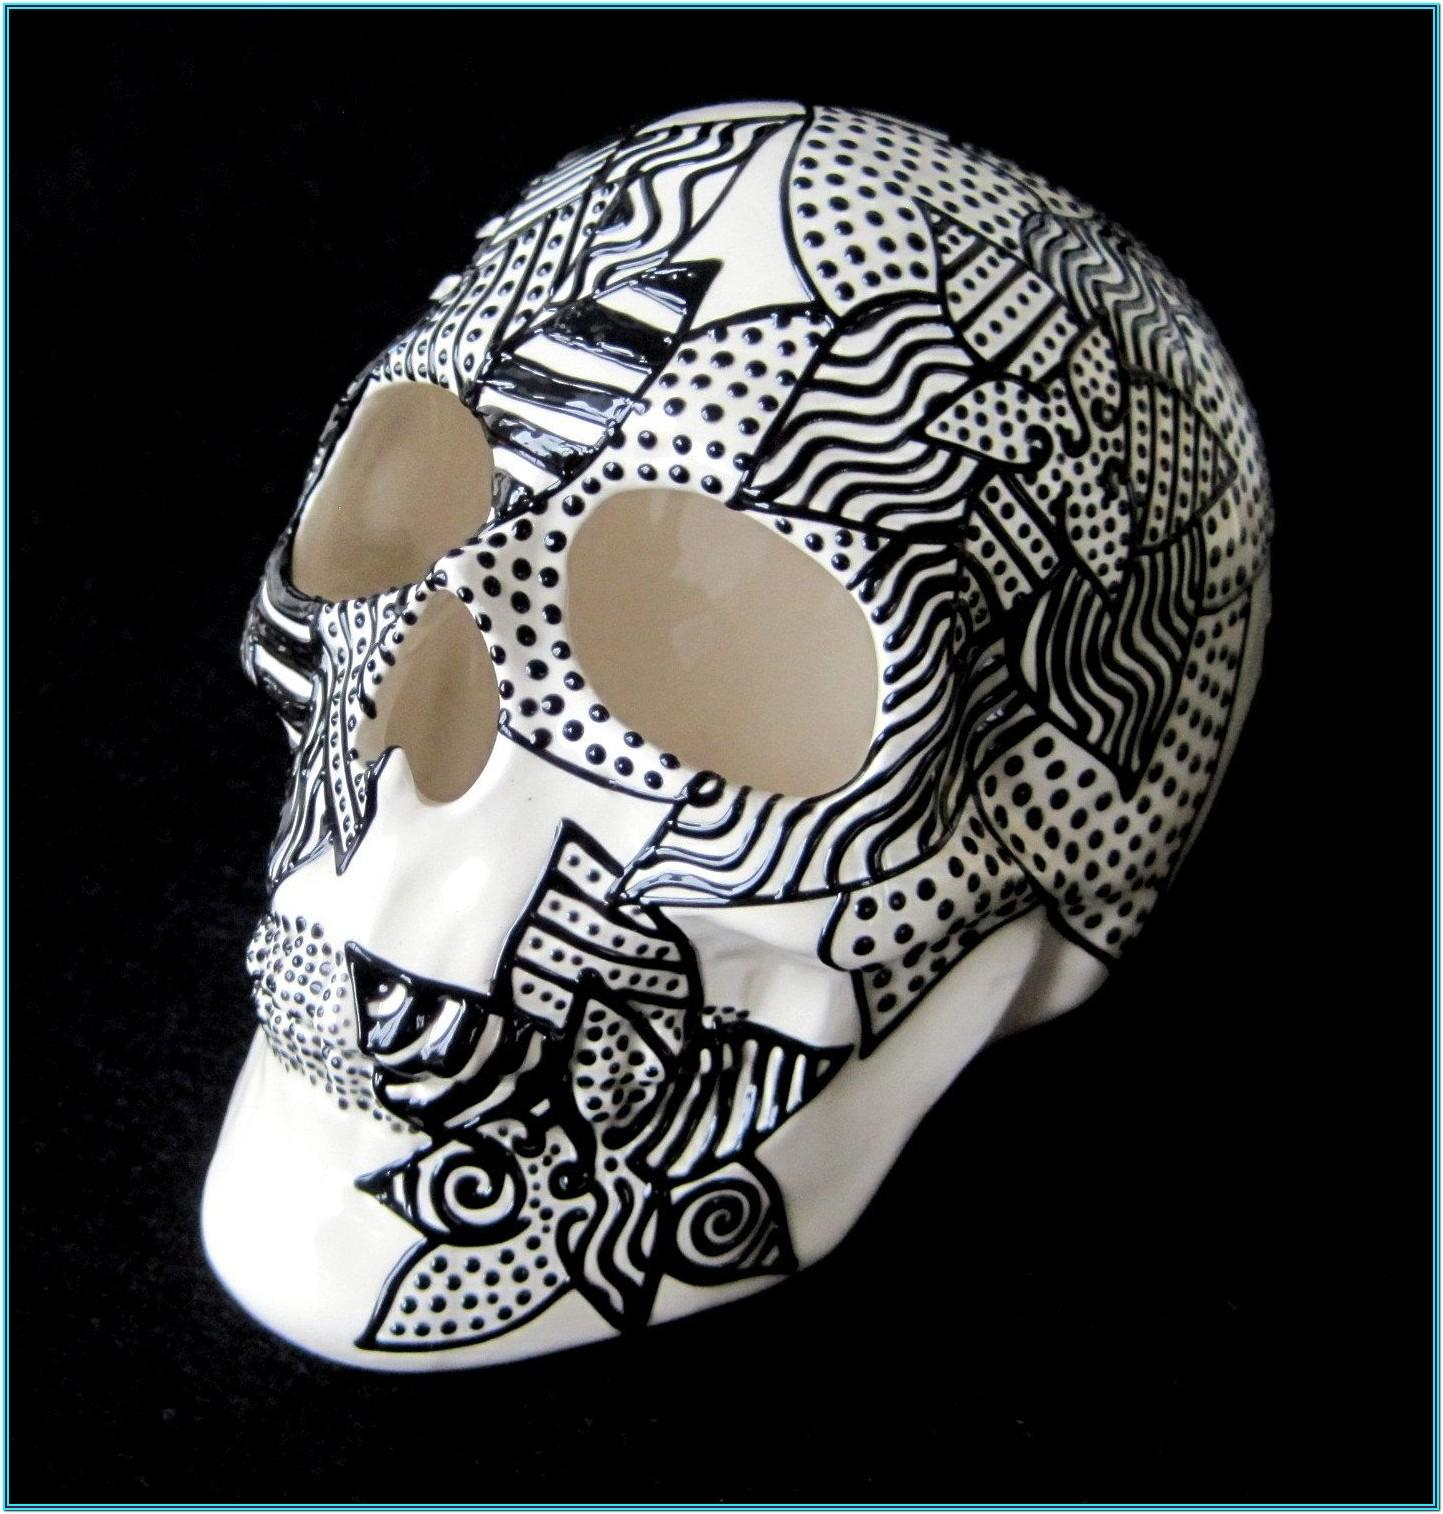 Ceramic Skull Painting Ideas